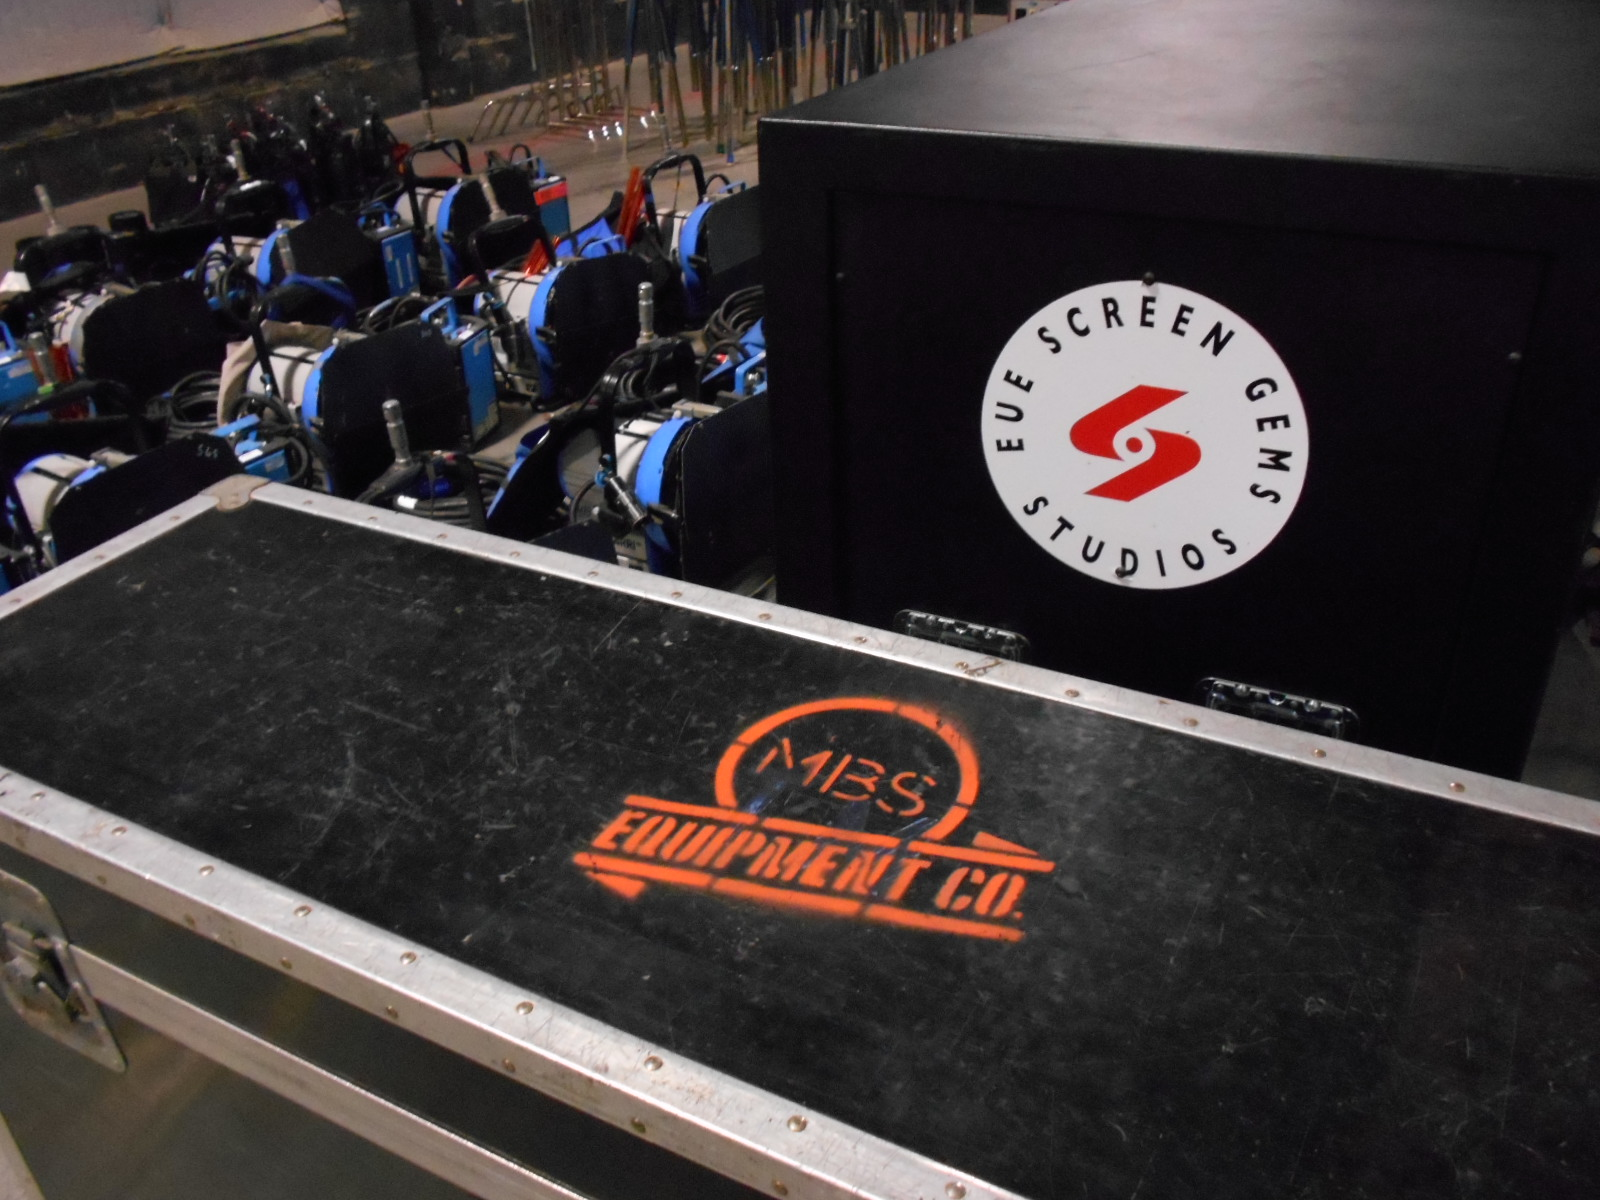 Eue Screen Gems Atlanta Expands Lighting And Grip With Mbs